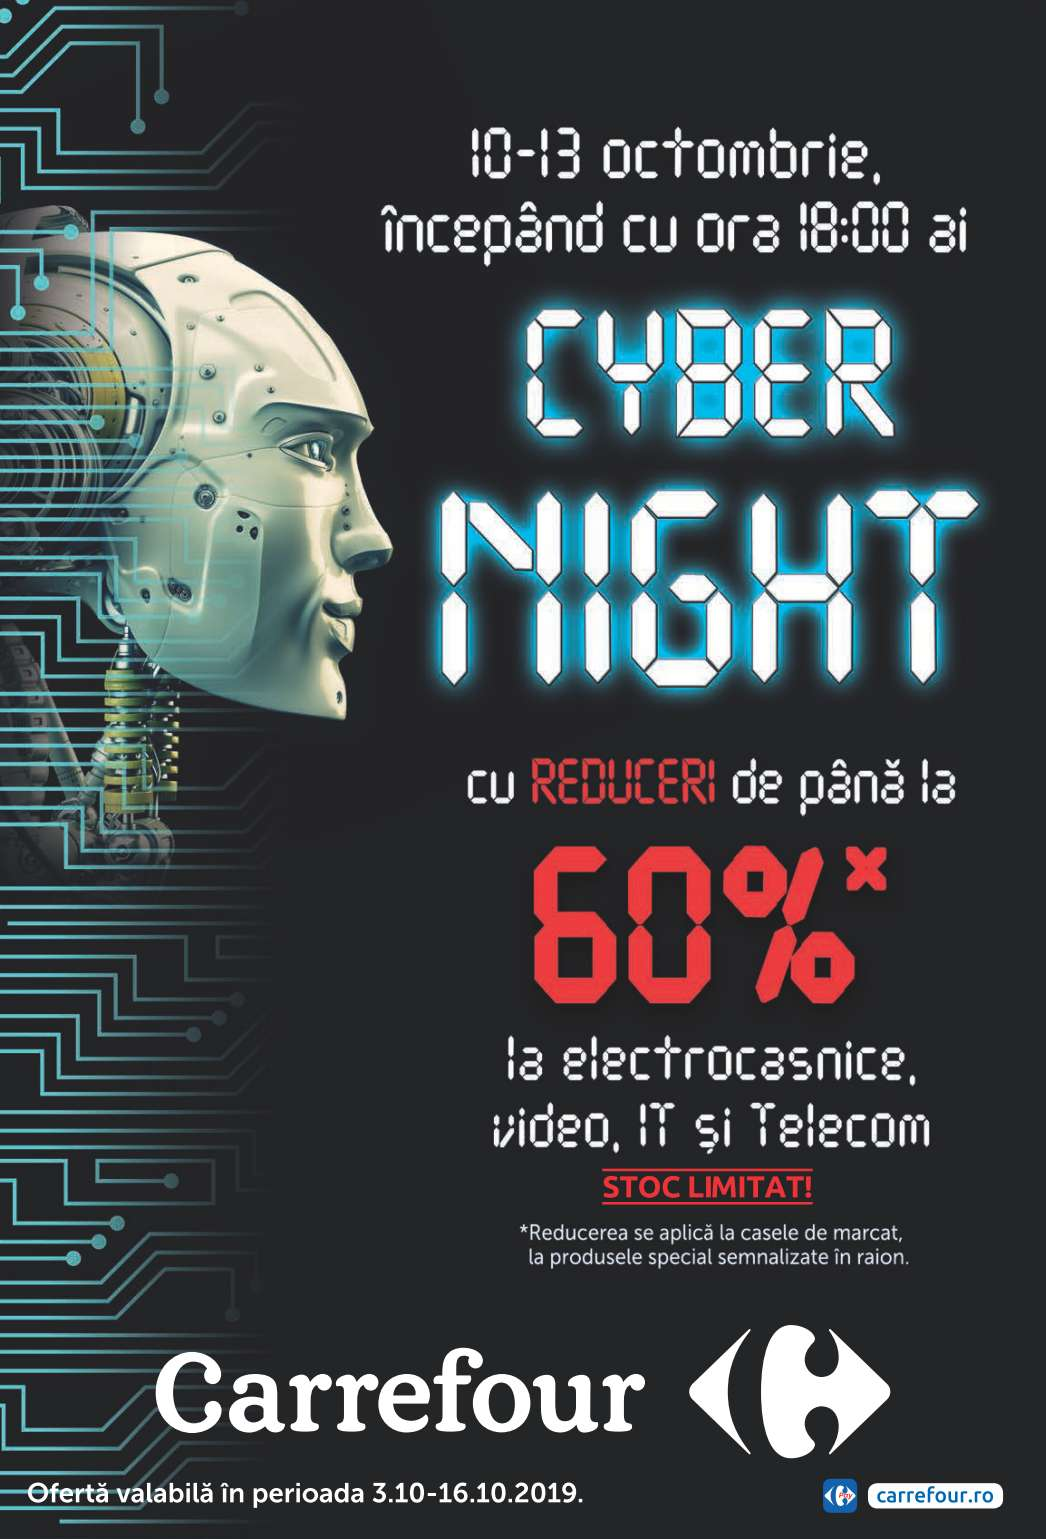 Catalog CARREFOUR - 60% Reduceri Cyber Night! 03 Octombrie 2019 - 16 Octombrie 2019